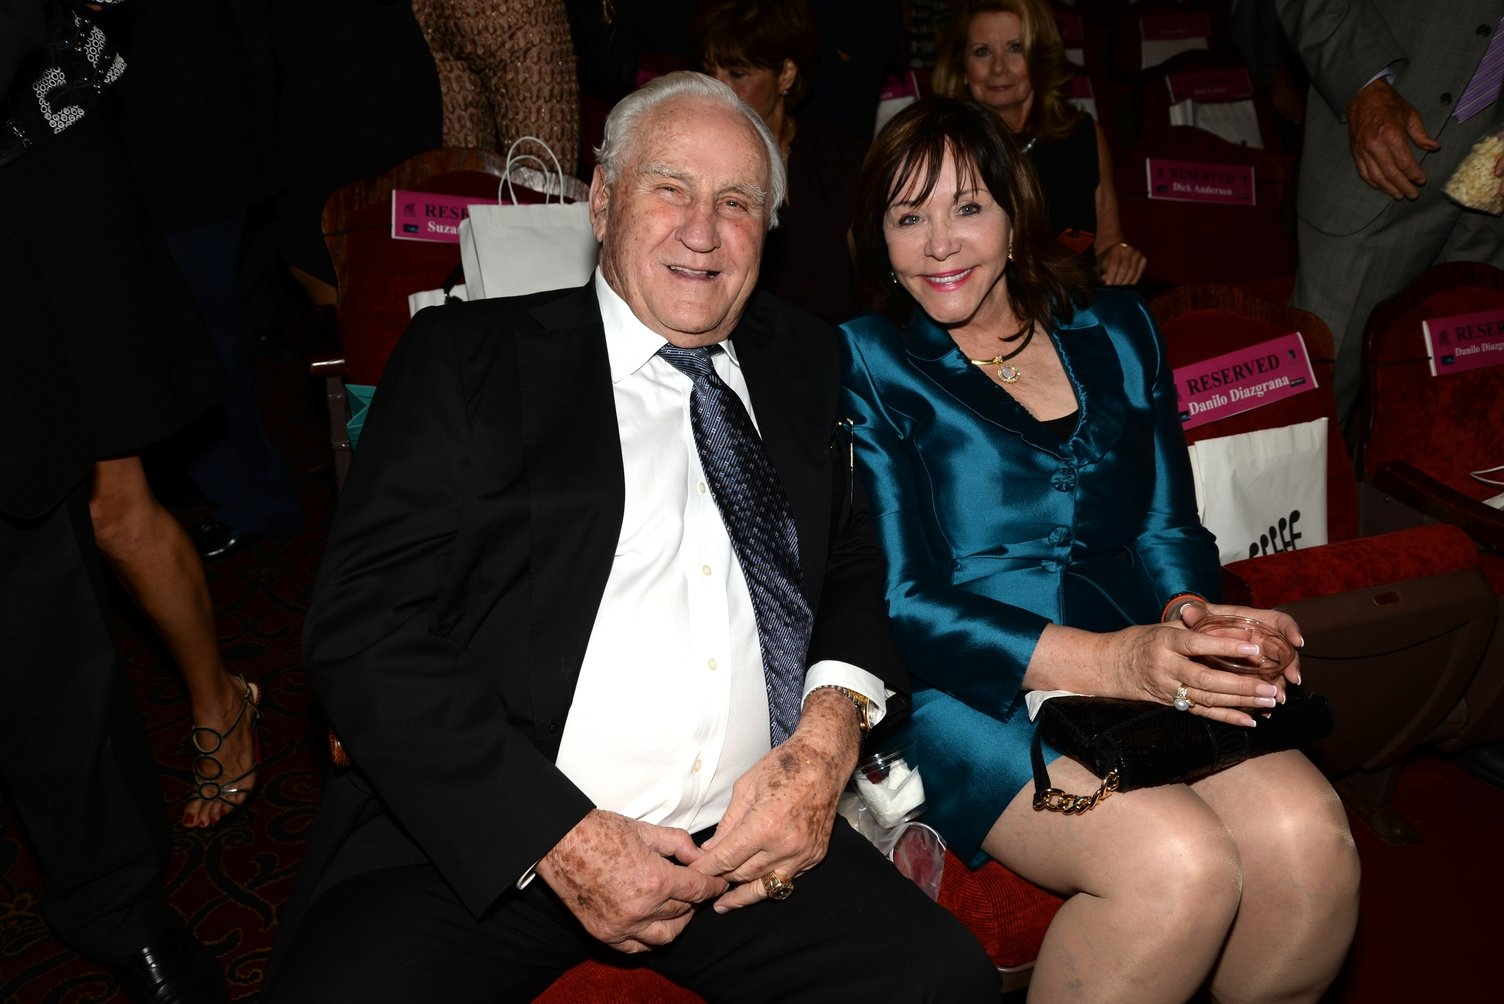 """Don Shula and Mary Anne Stephens attend """"An Unbreakable Bond"""" premiere during the Miami International Film Festival on March 11, 2014 in Miami, Florida 